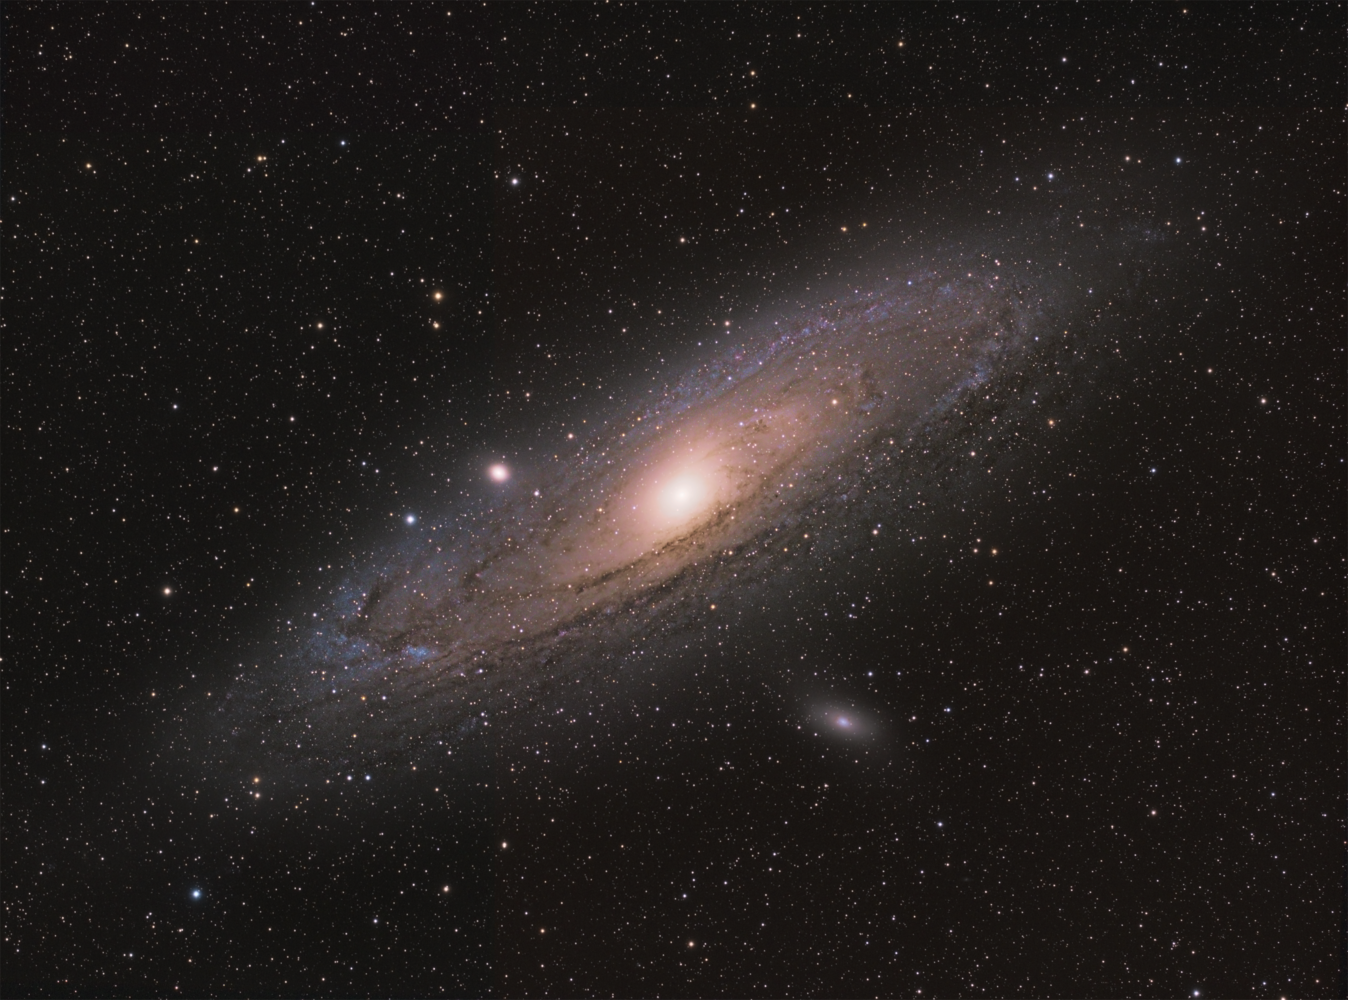 Andromeda! Messier 35 - our large spiral galaxy neighbor by Robert Huerbsch